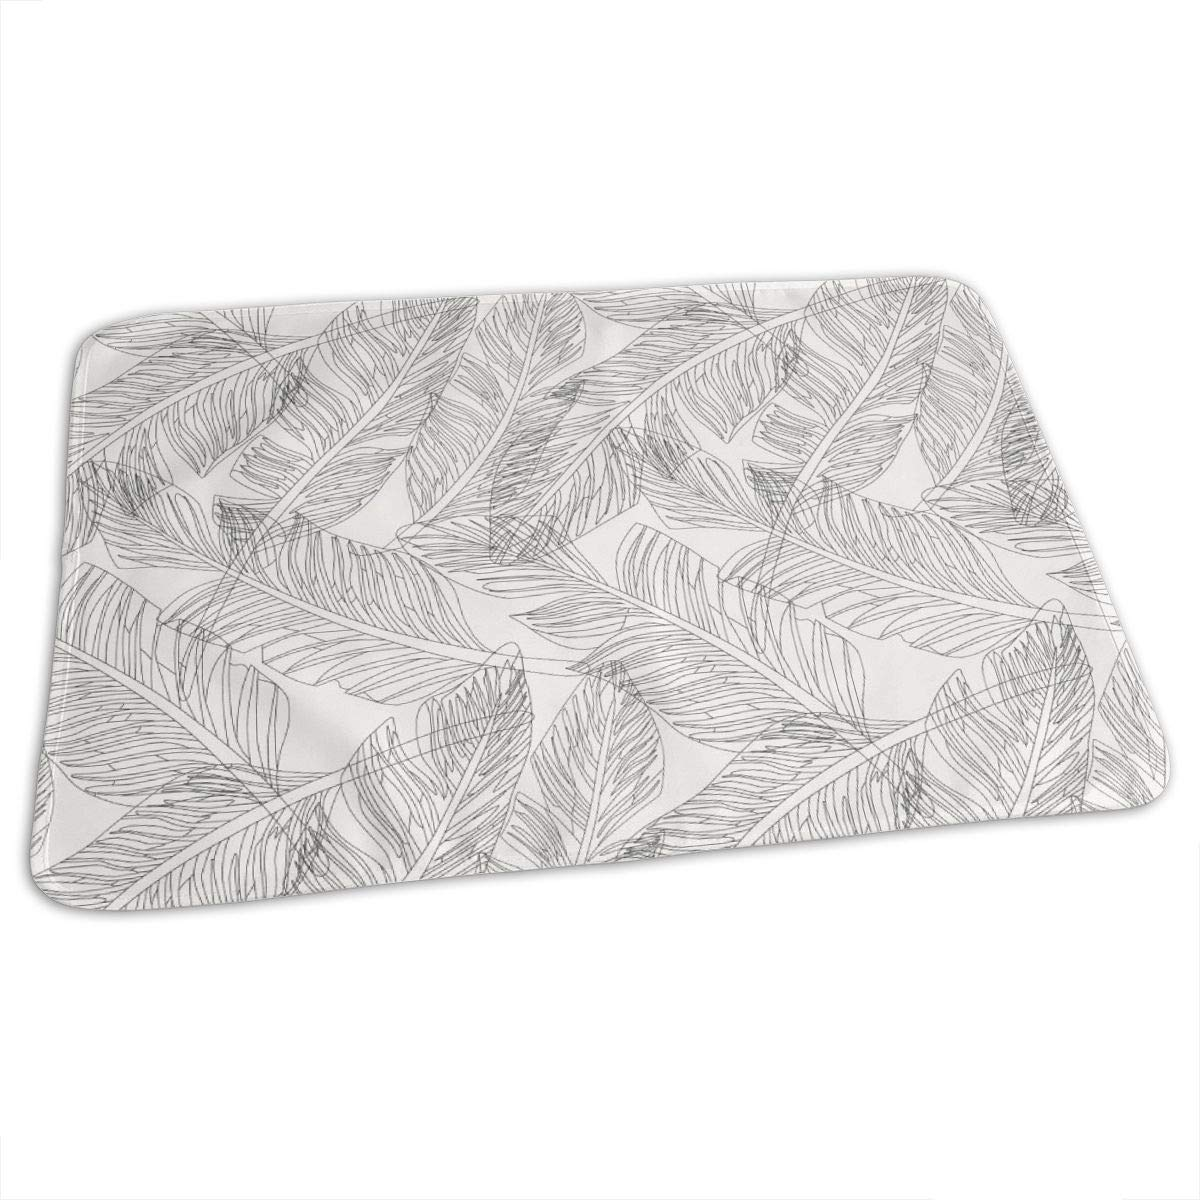 GHJWEG Lovely Baby Reusable Waterproof Portable Outline Palm Leaves Changing Pad Home Travel 27.5''x19.7'' by GHJWEG